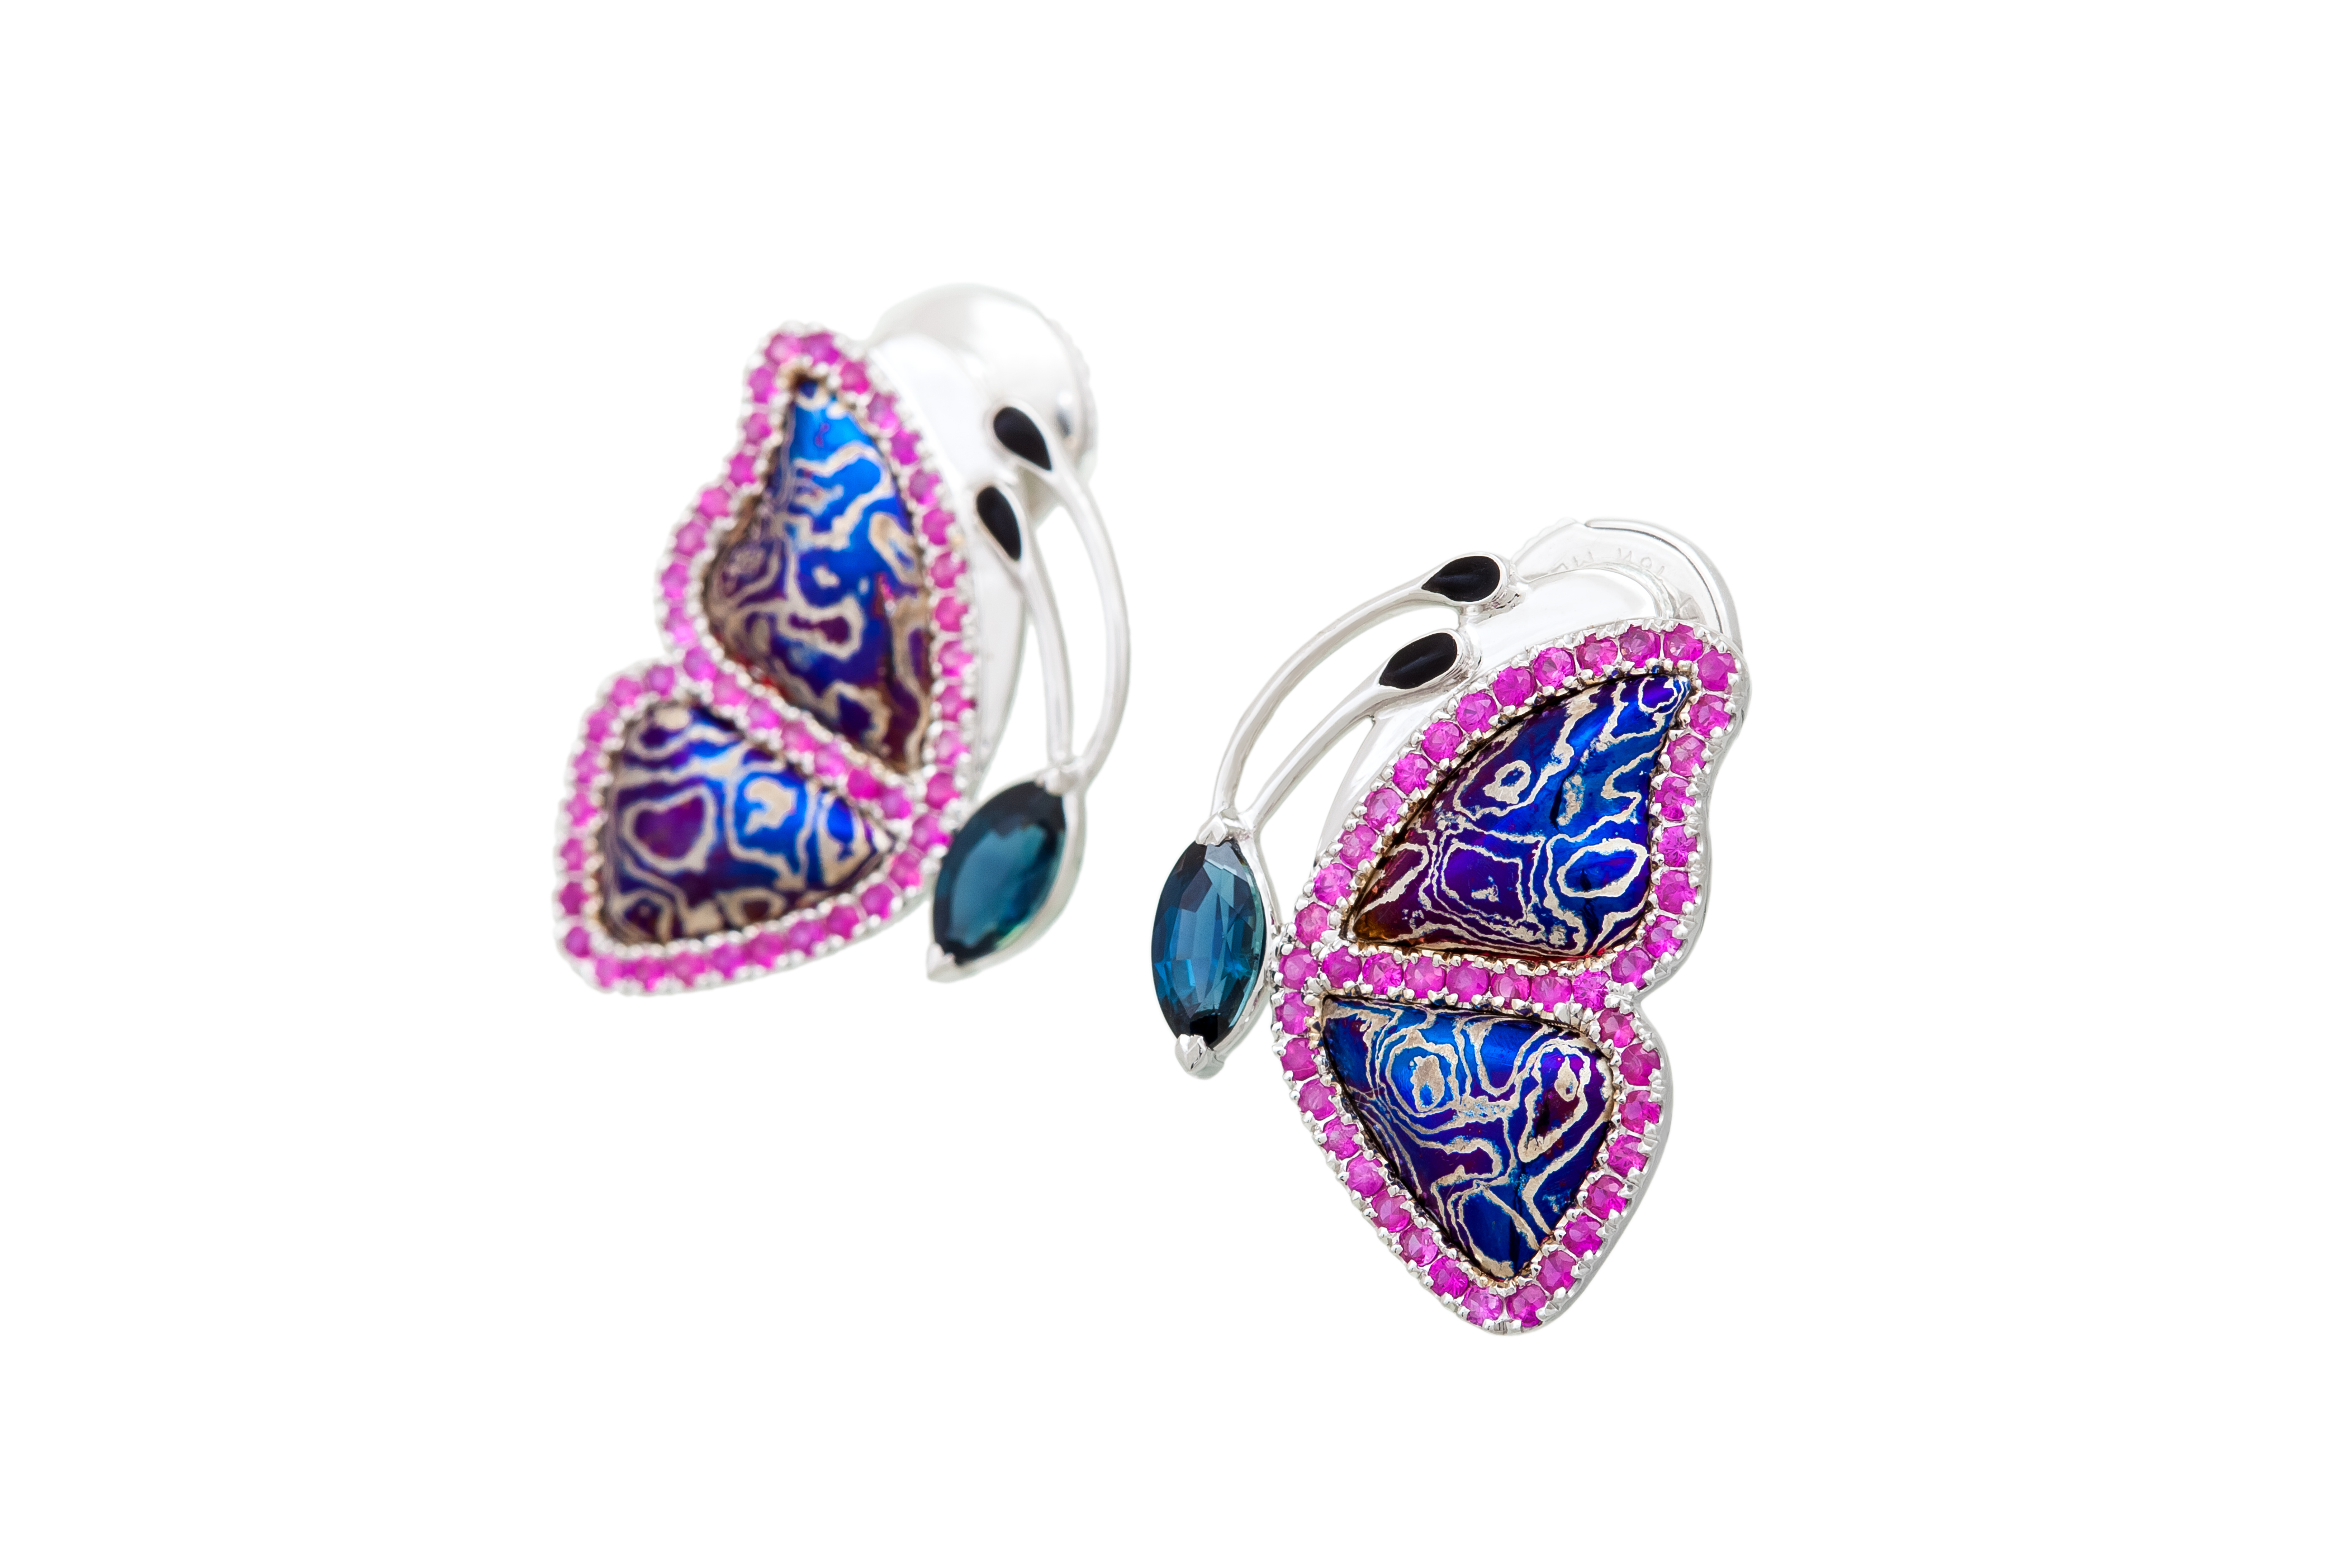 mariposa-earrings-2-2